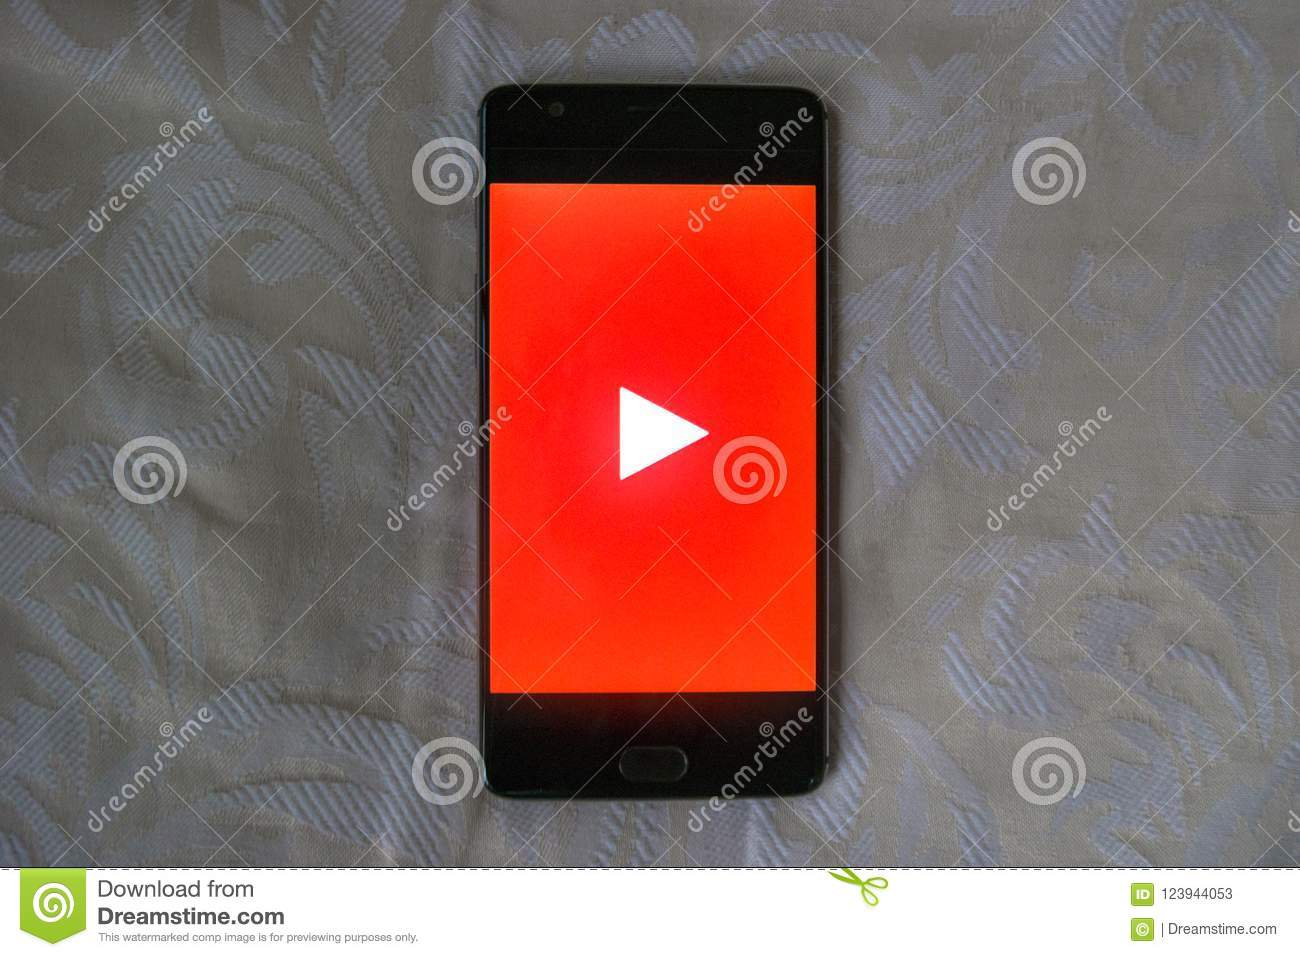 Youtube App On An Android Phone With White Texture Background